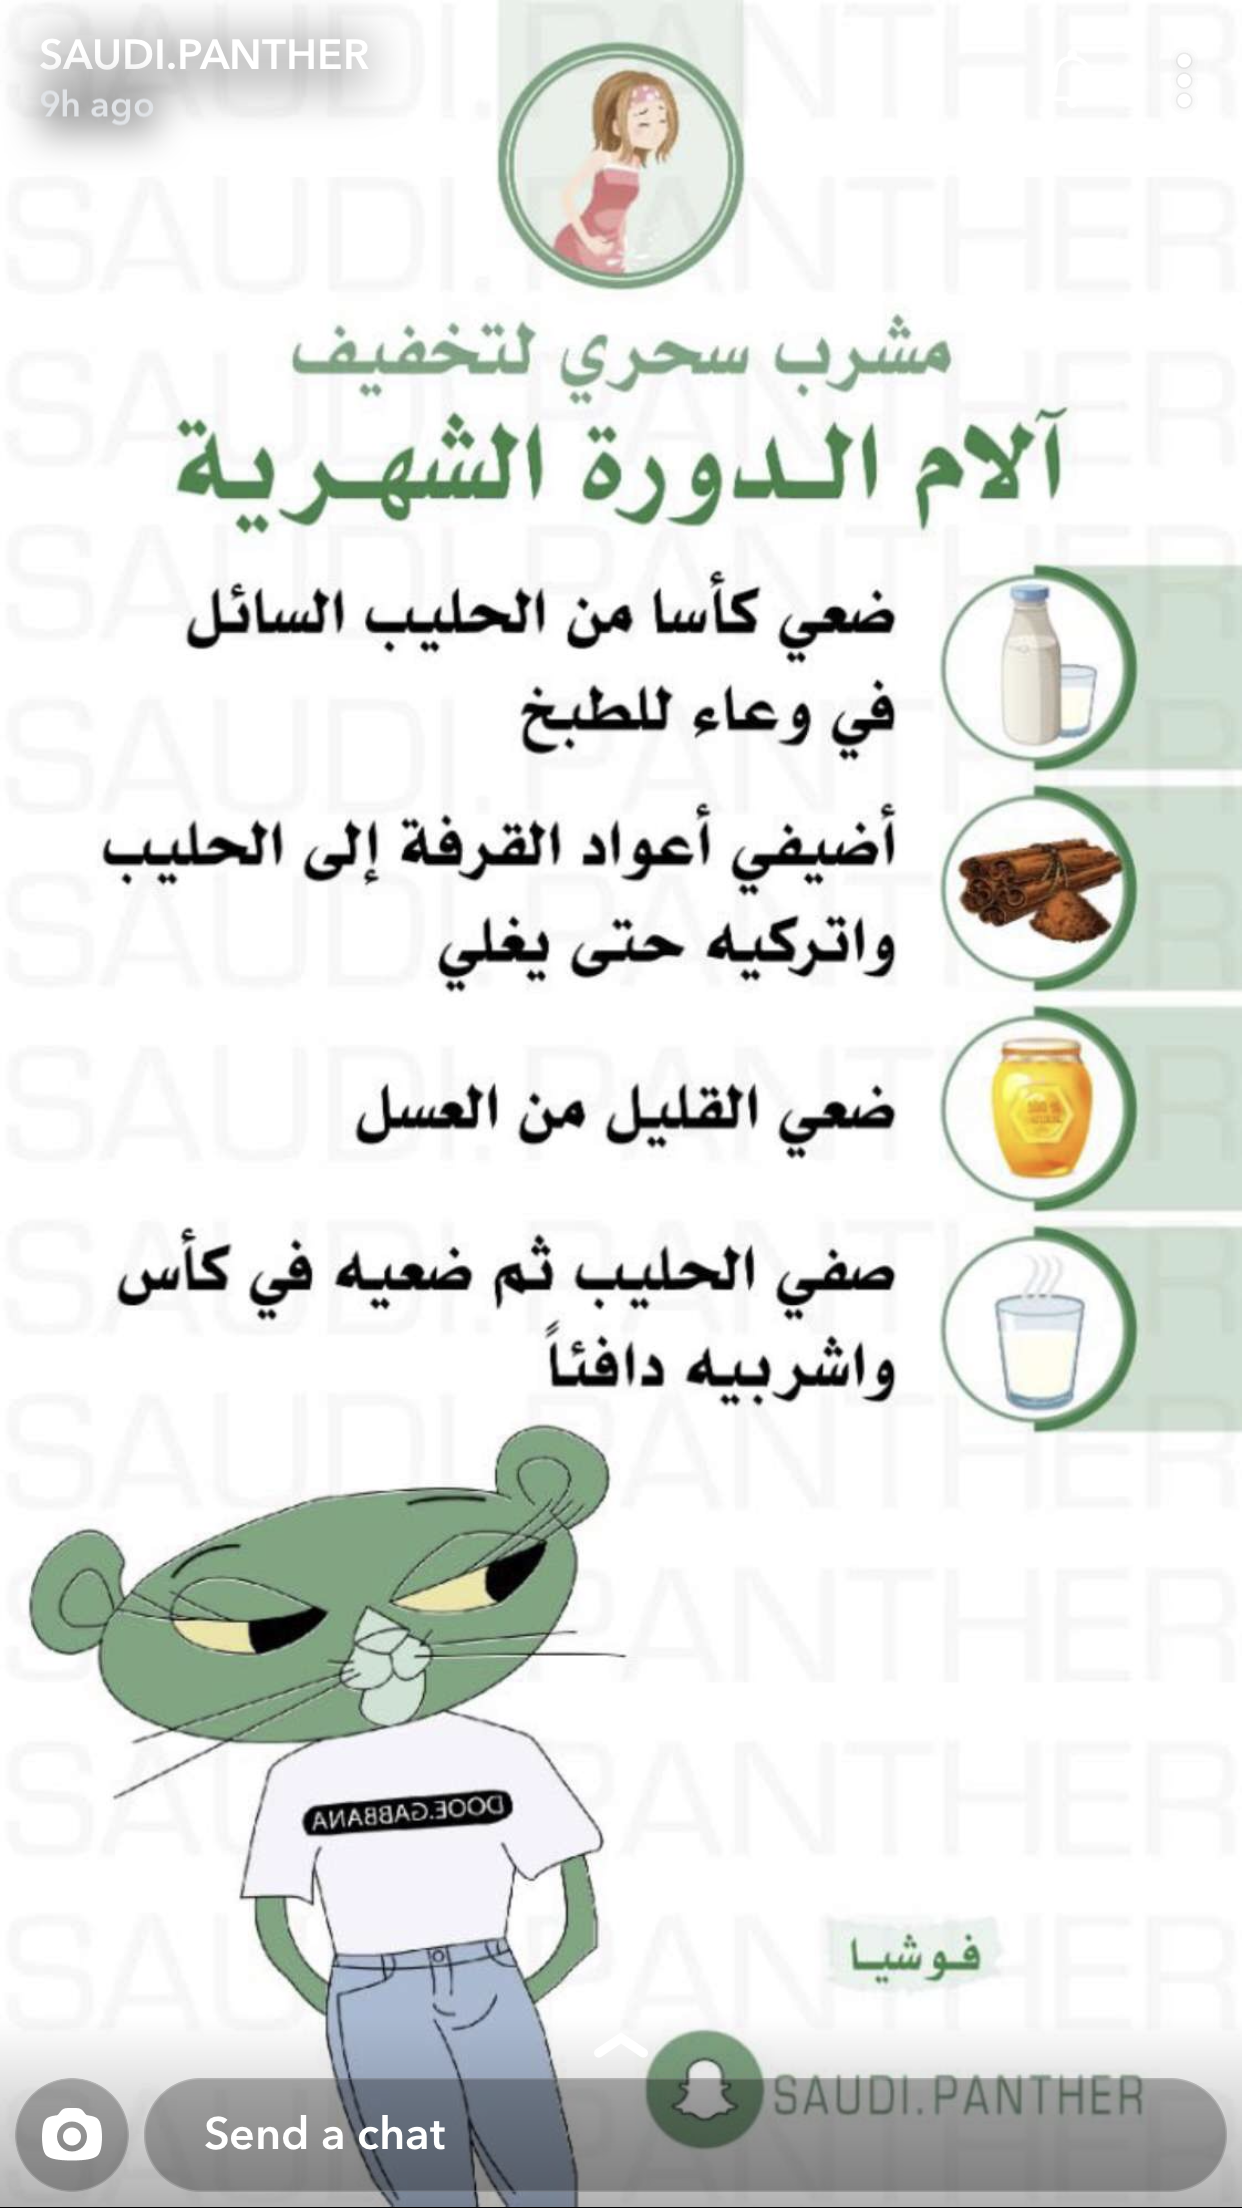 Pin By Abdallah Lala On Saudi Panther Health Facts Fitness Health Fitness Nutrition Health And Nutrition